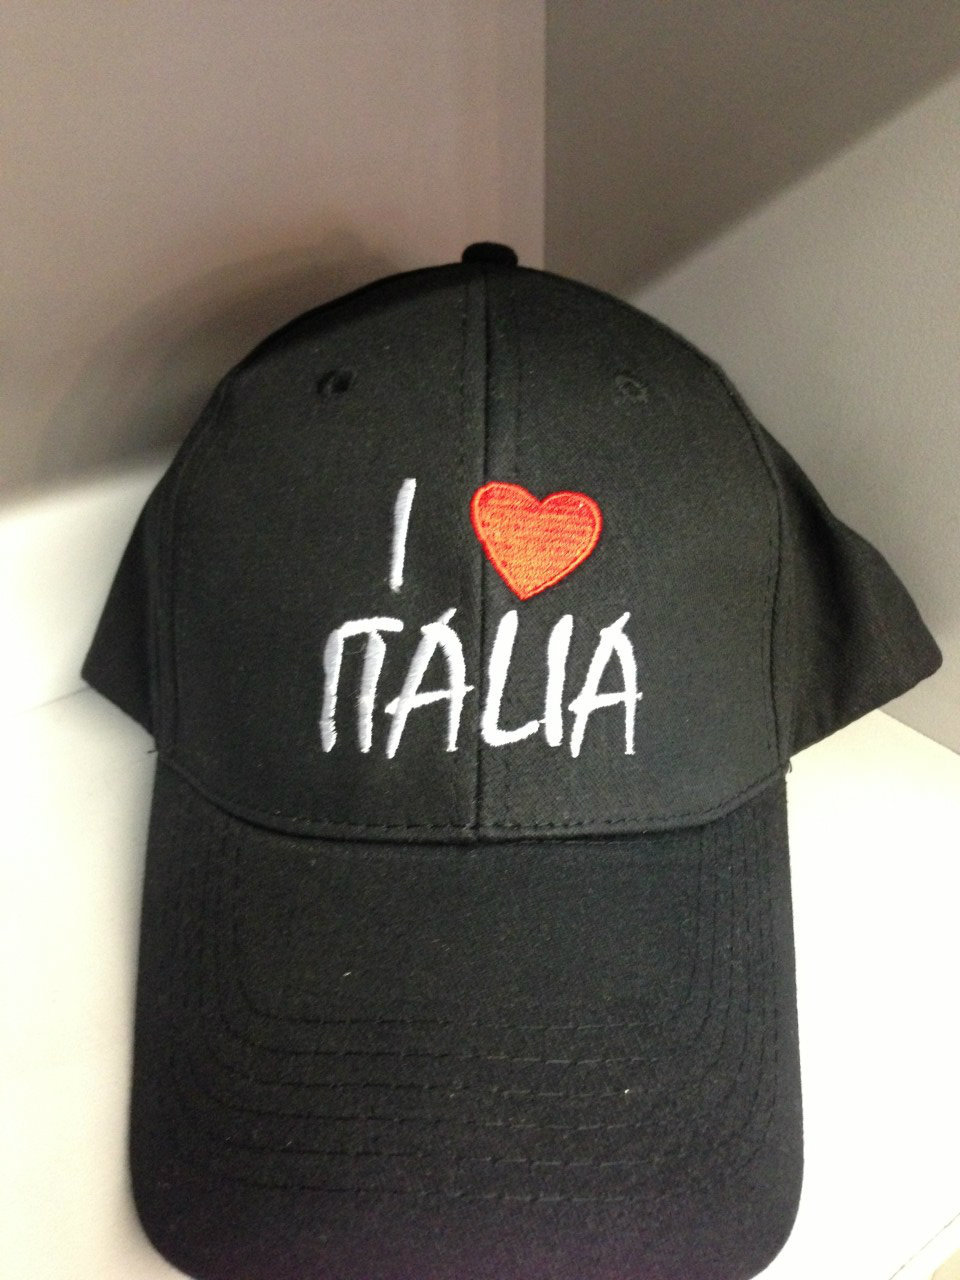 I LOVE ITALIA BLACK CAP